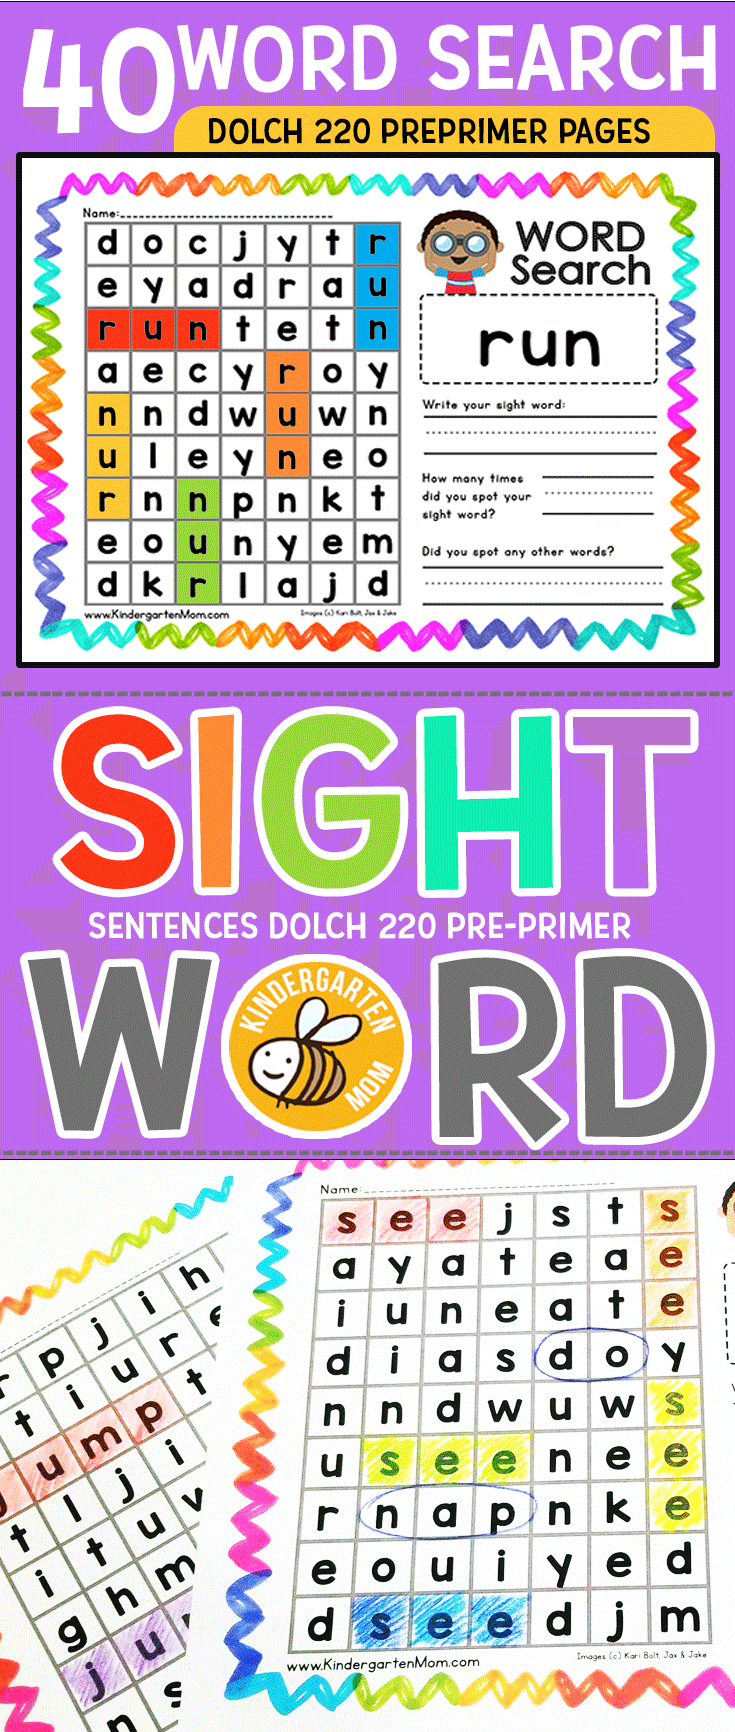 Dolch 220 PrePrimer Sight Word Word Search Worksheets